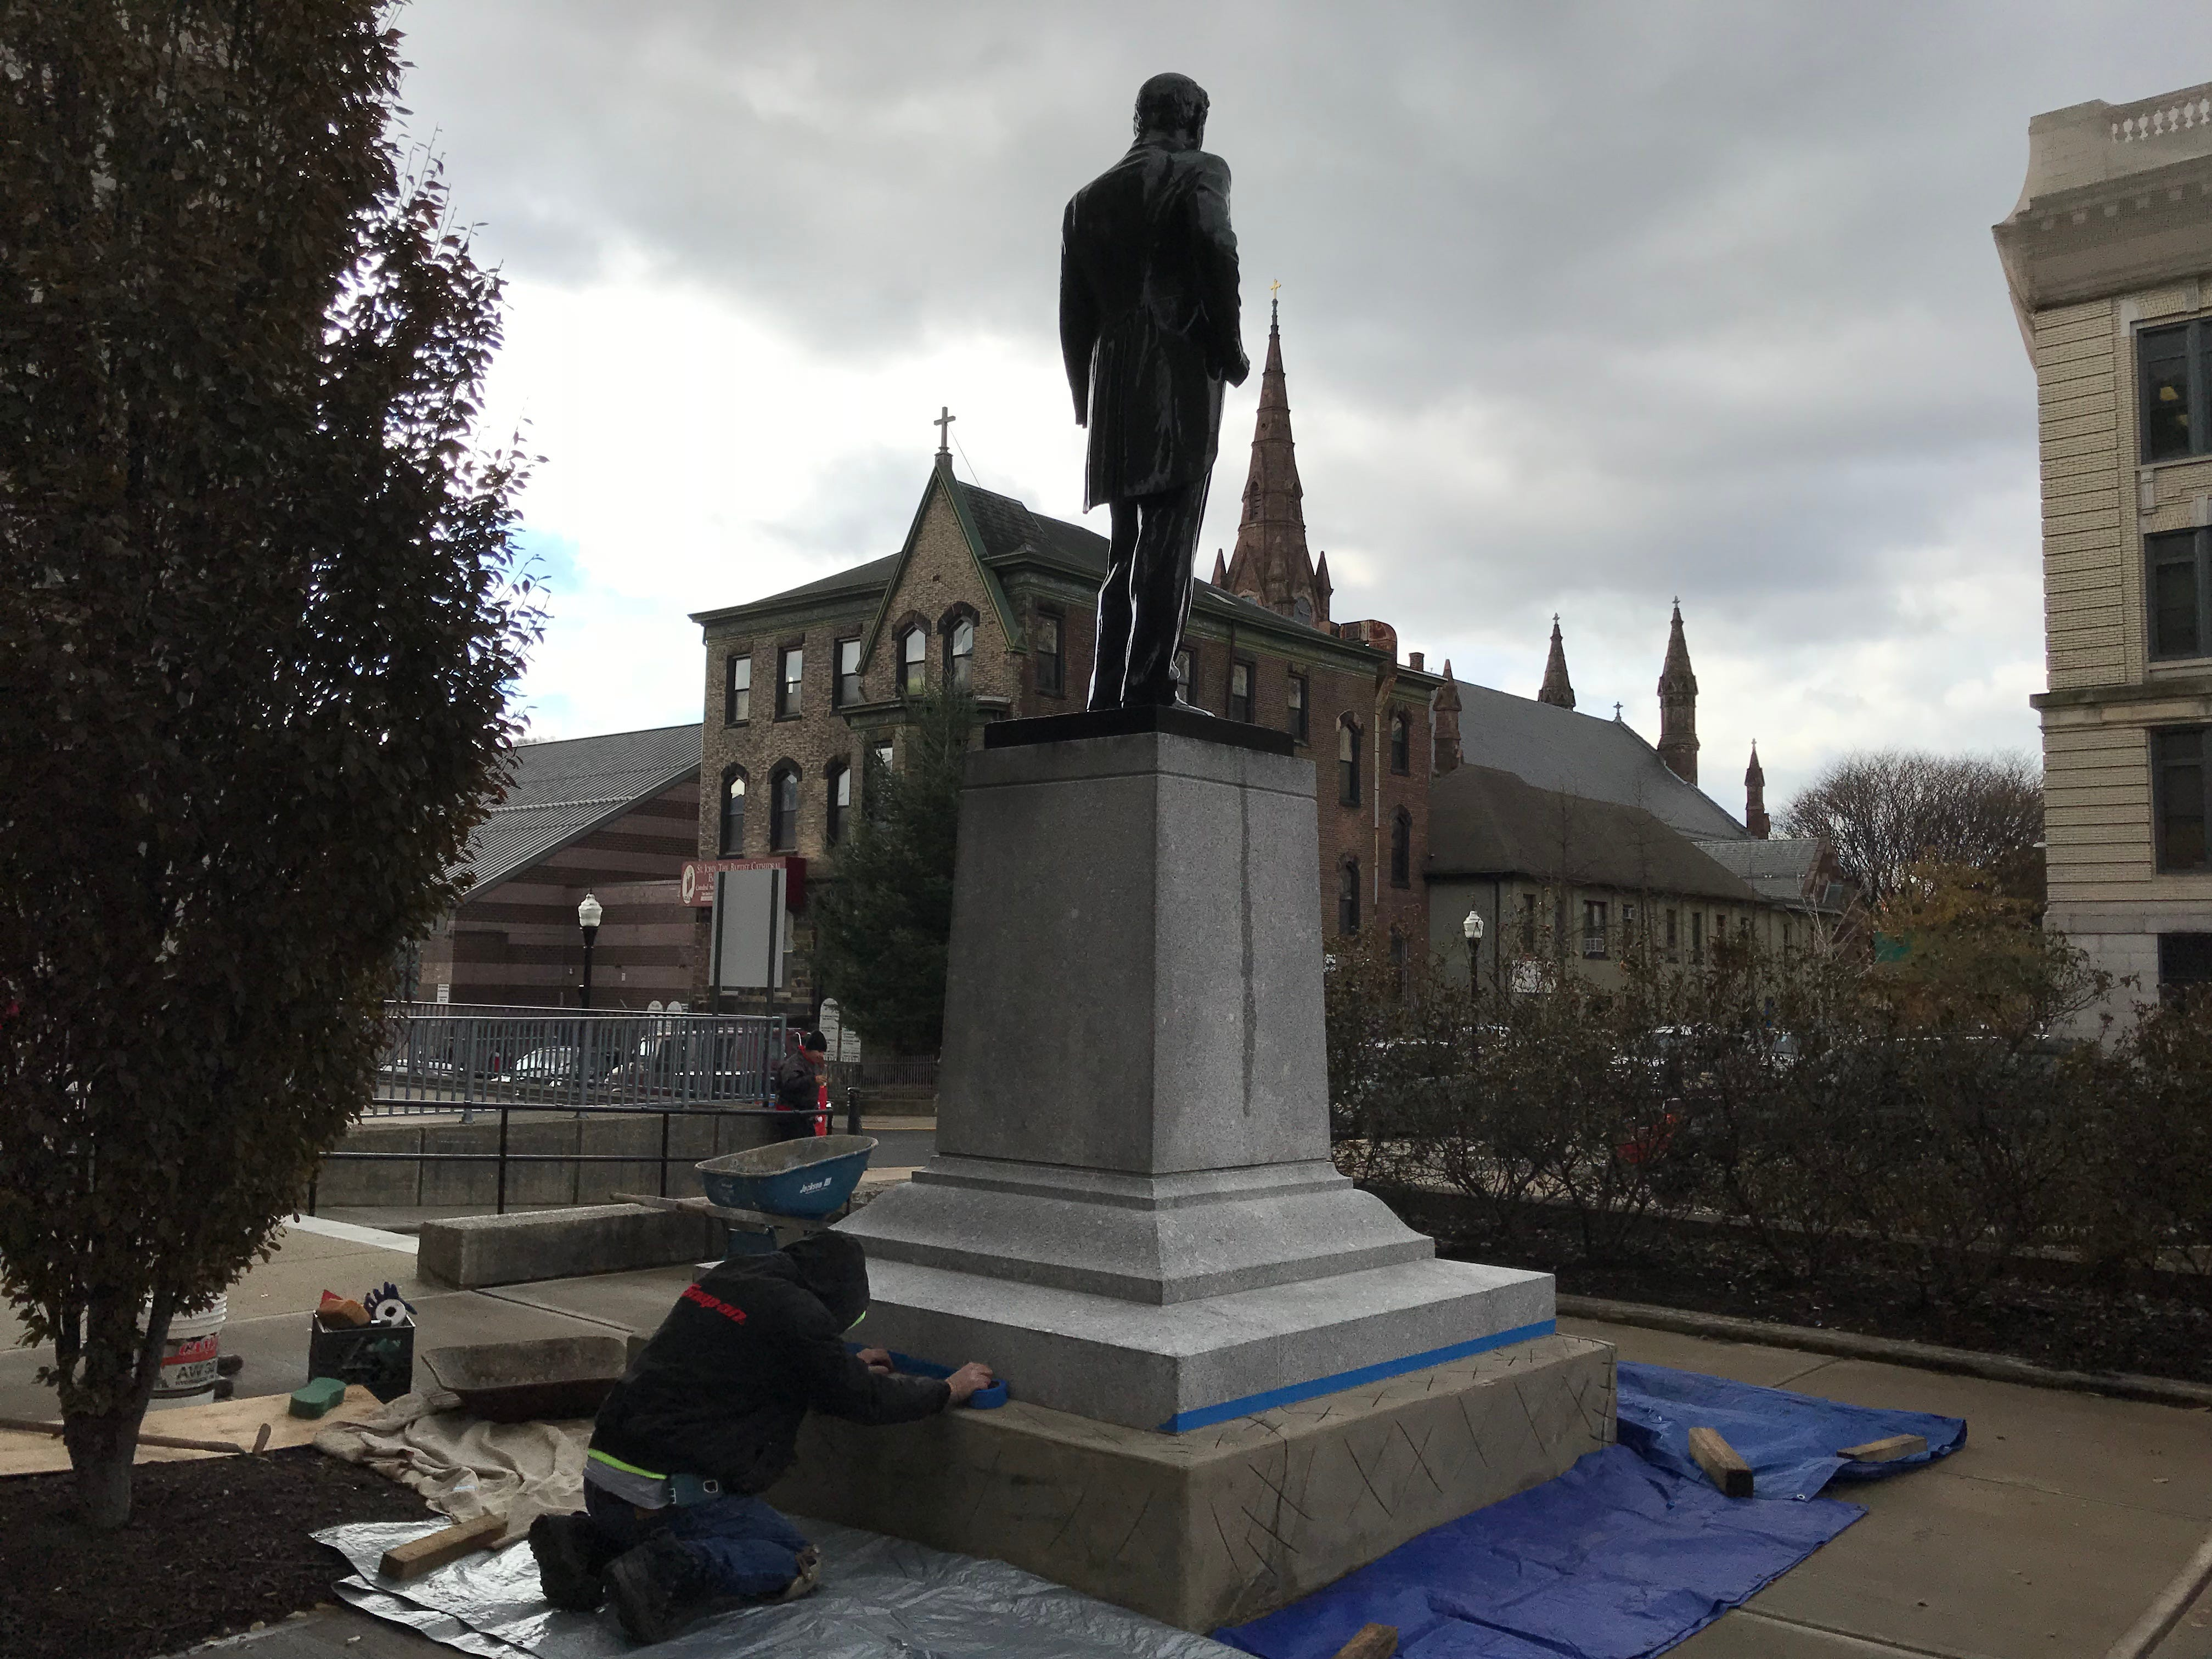 A stone mason restoring the granite base of the William Hughes monument in front of the Passaic County Courthouse in Paterson.